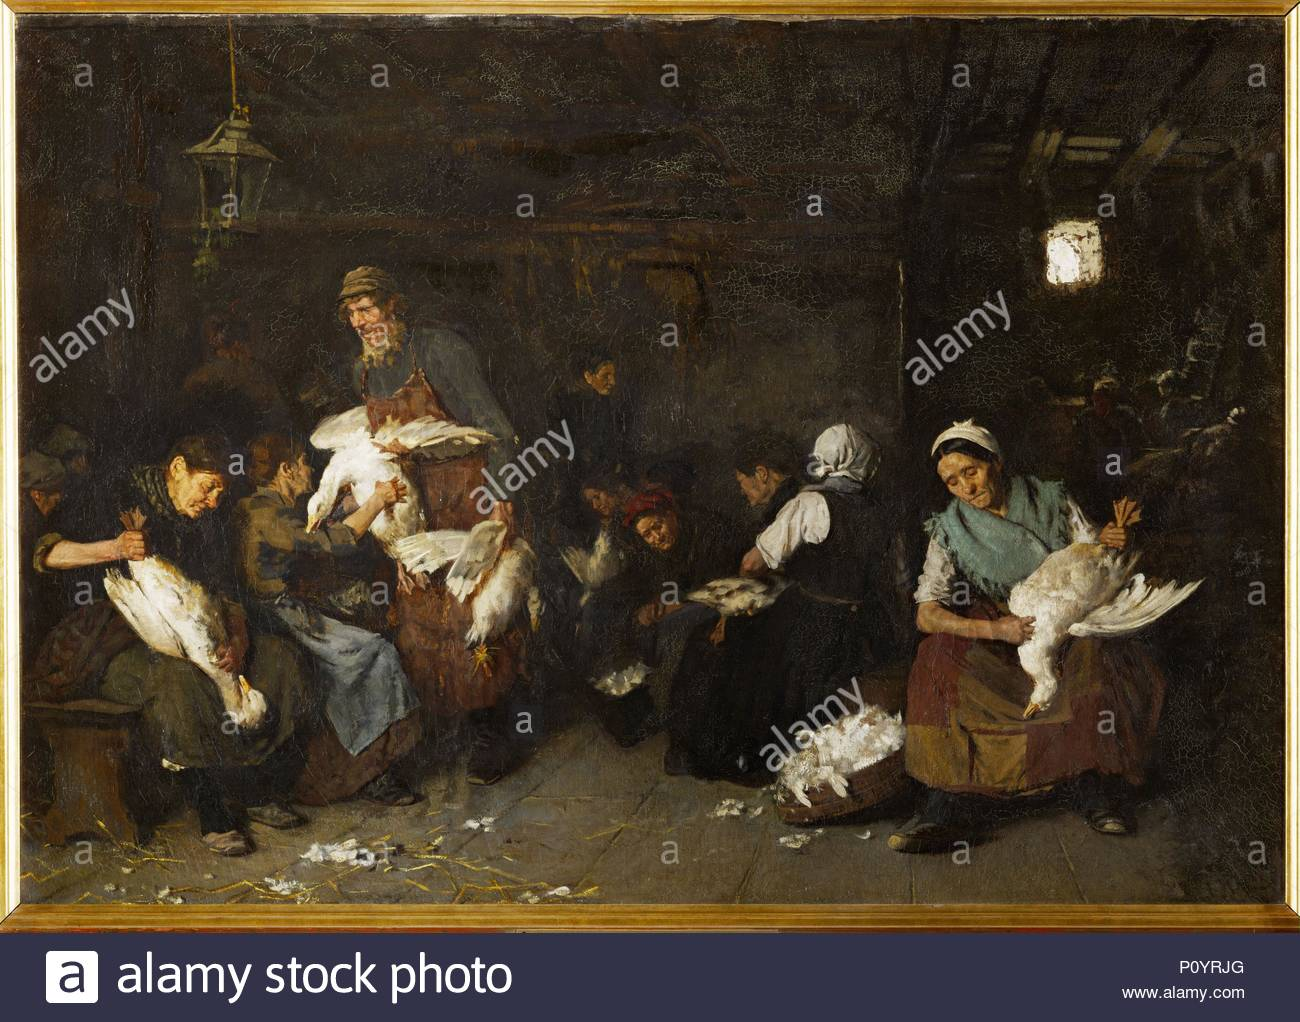 Women plucking geese. Author: Max Liebermann (1847-1935). Location: Staatl. Museen, Nationalgalerie, Berlin, Germany. - Stock Image